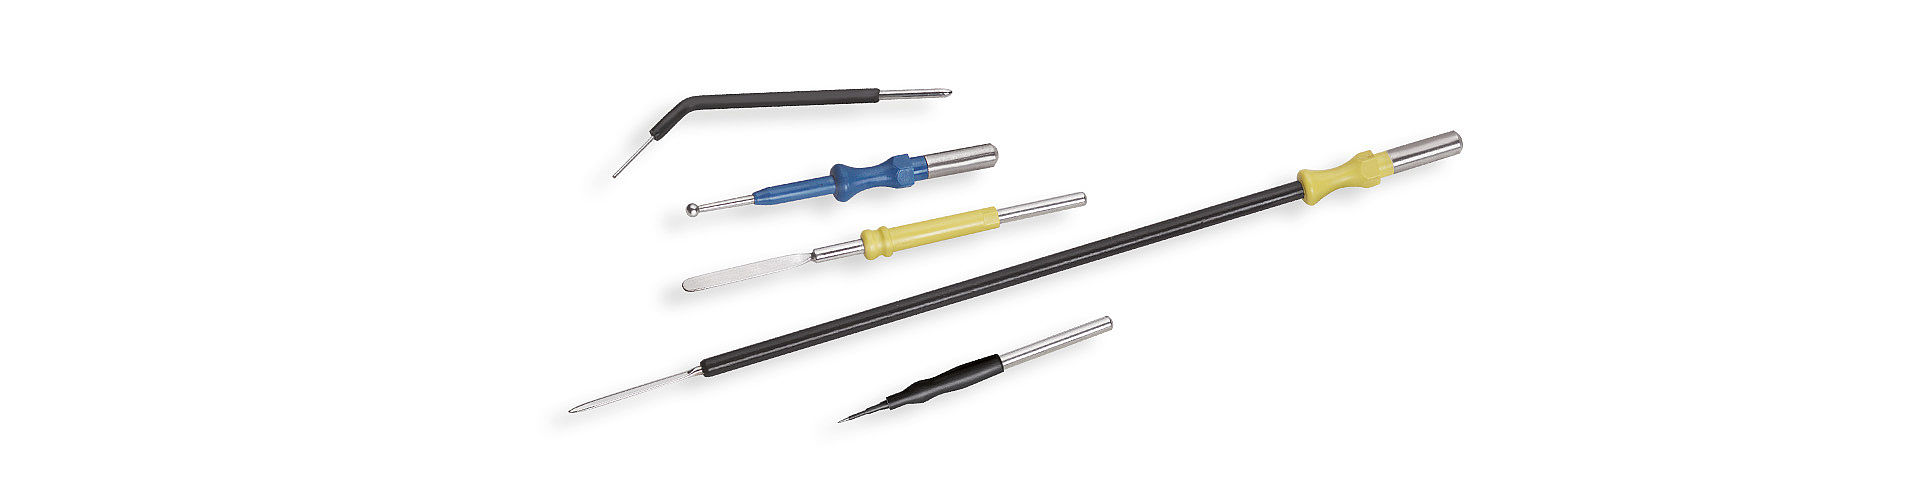 Electrosurgery - accessories electrodes